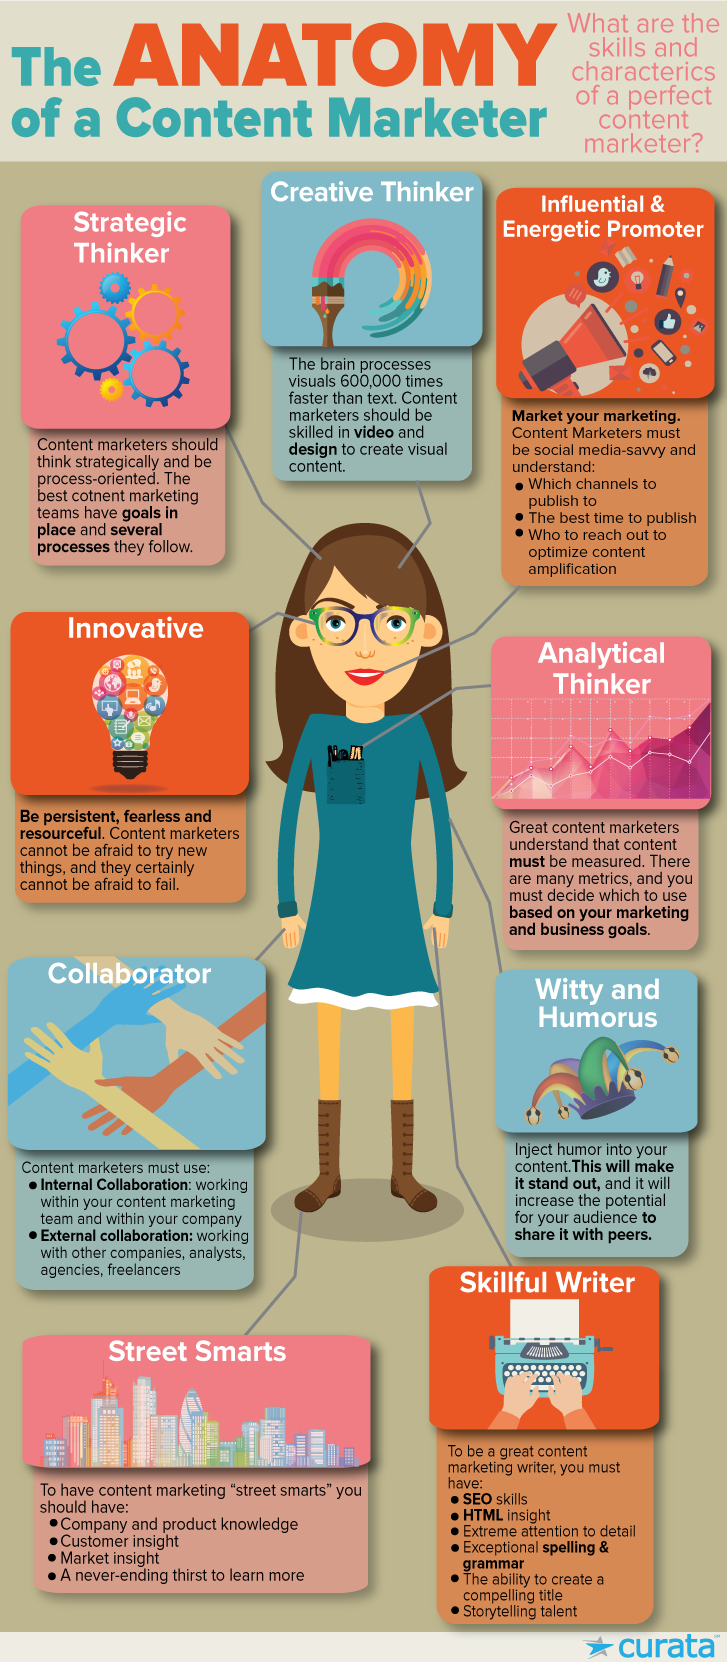 The Anatomy of a Content Marketer #contentmarketing